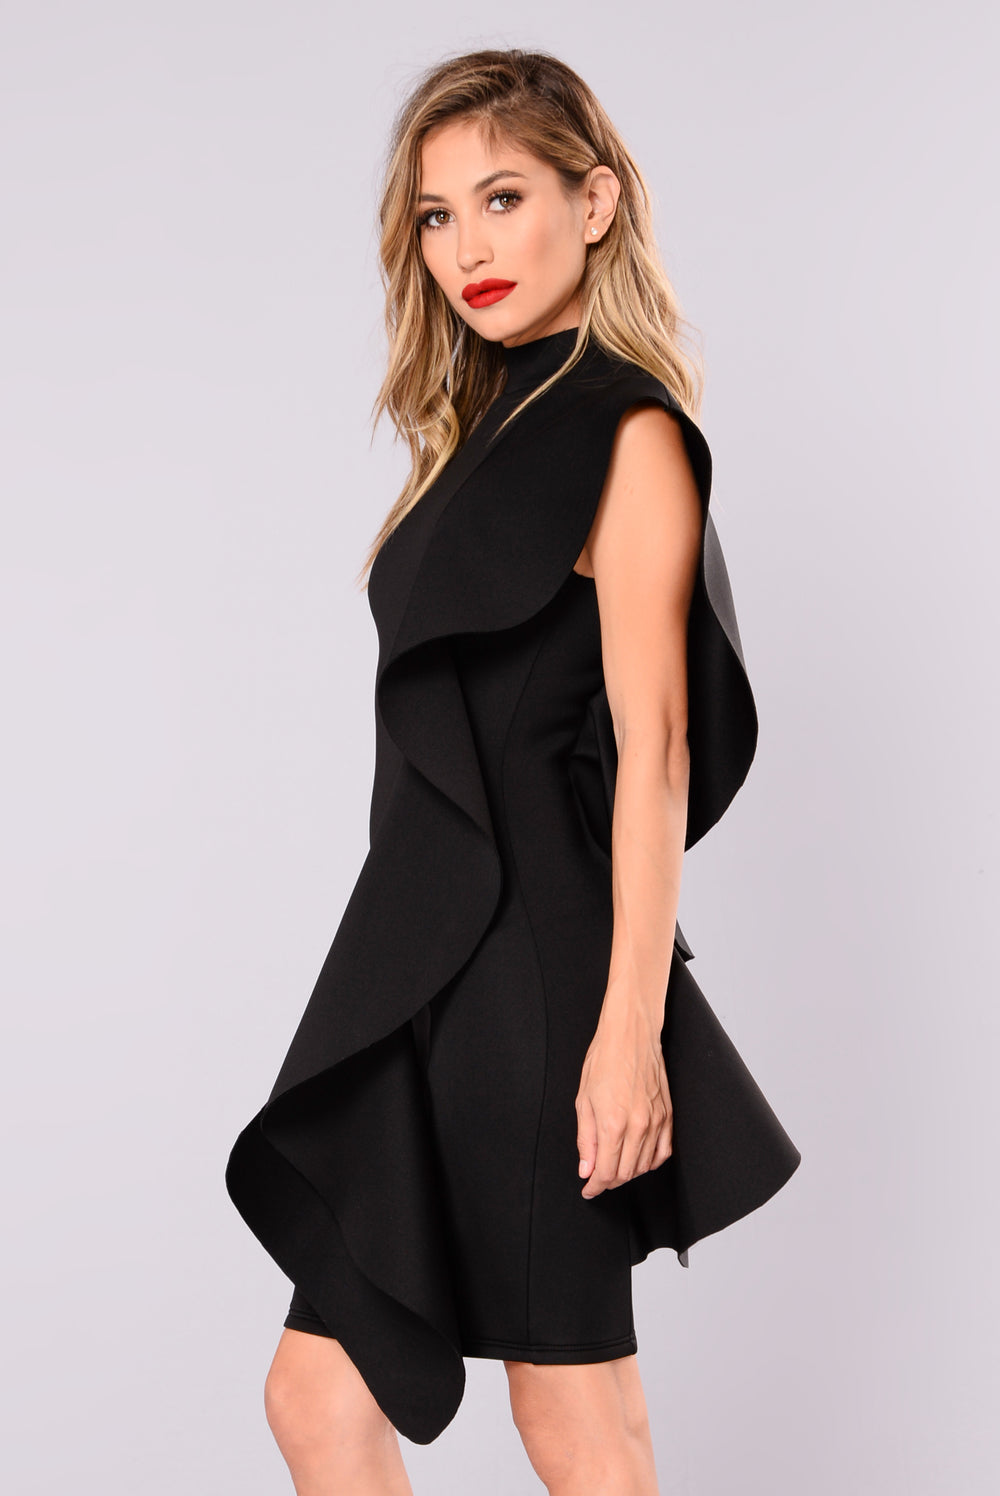 Carnival Ruffle Dress - Black